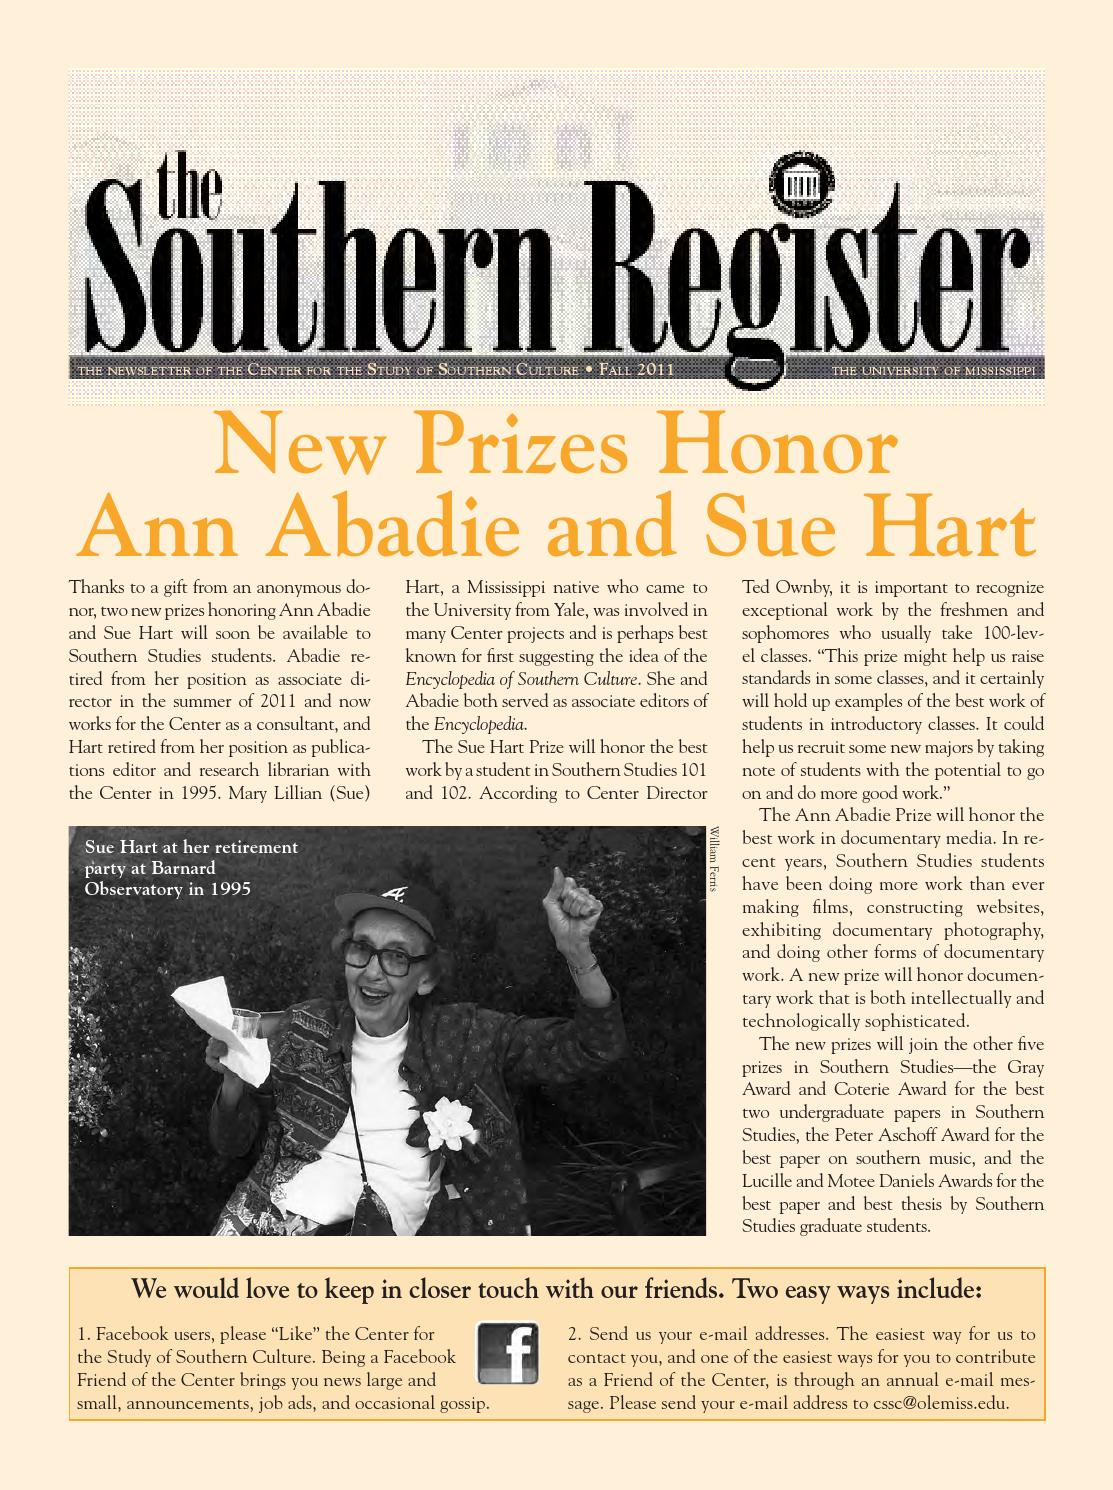 Southern Register Fall 2011 by Southern Studies - issuu